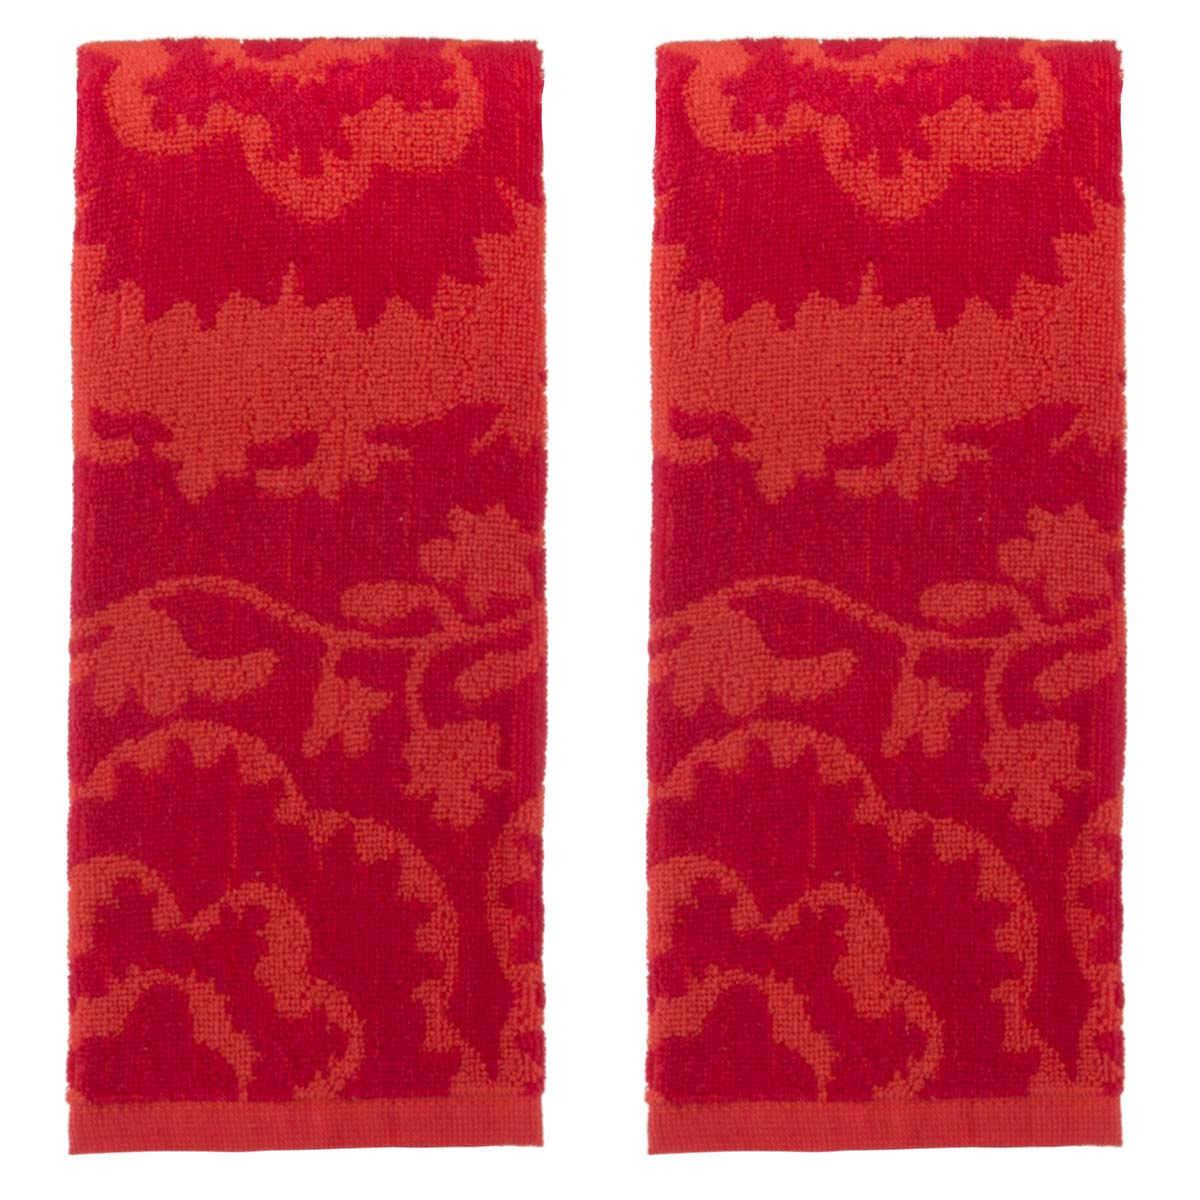 Attirant Oui By French Bull (2 Pack) Kitchen Towels Set Colorful Cotton Terry Hand  Towel Modern Dishcloths